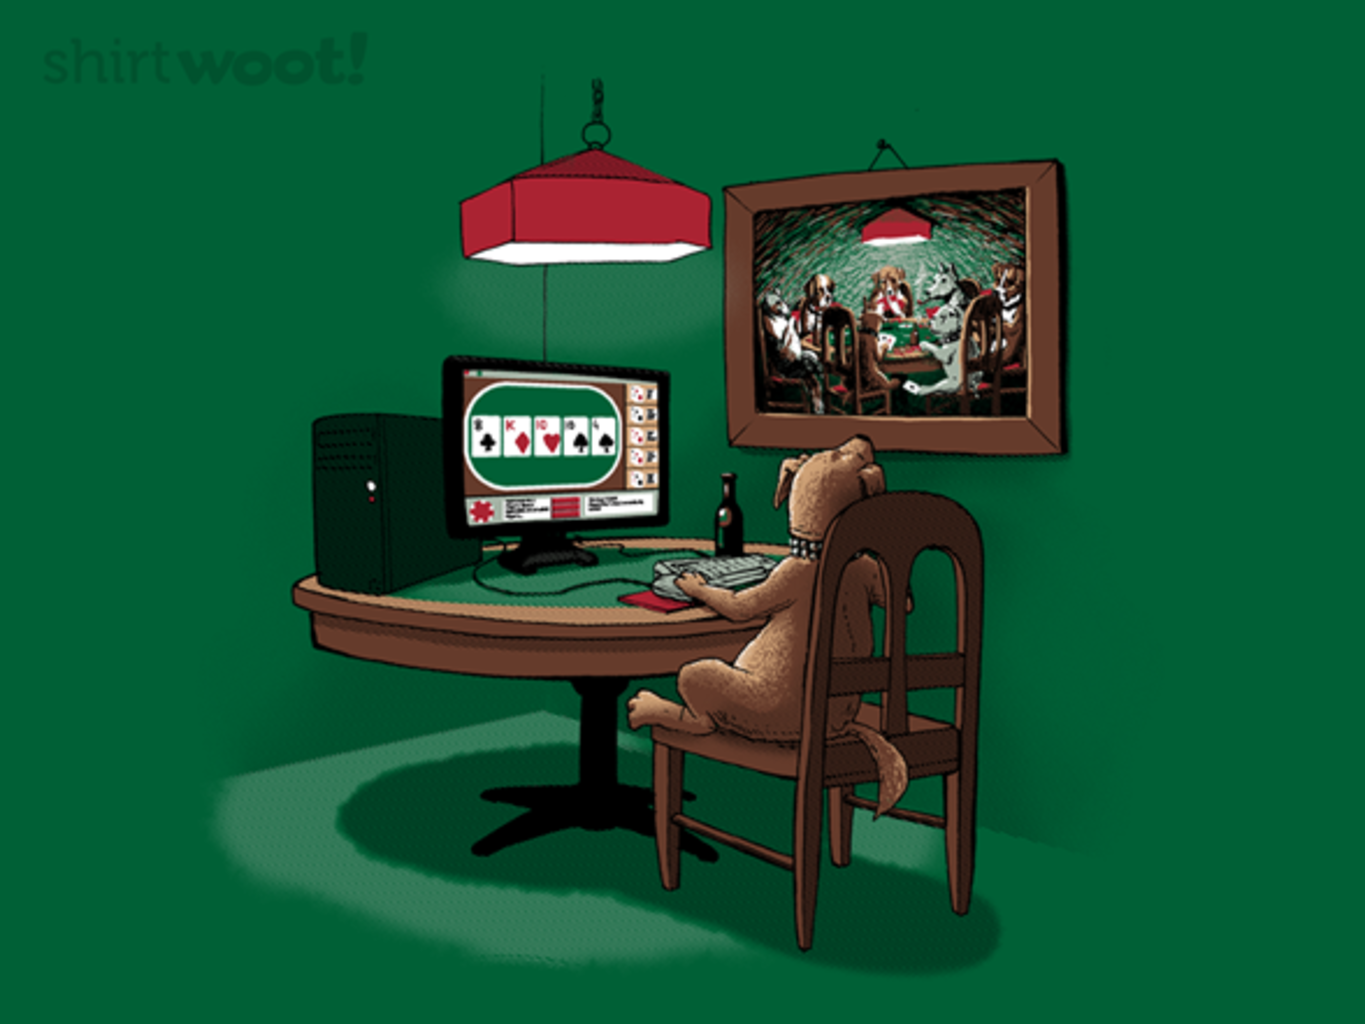 Woot!: Dog Playing Poker Online